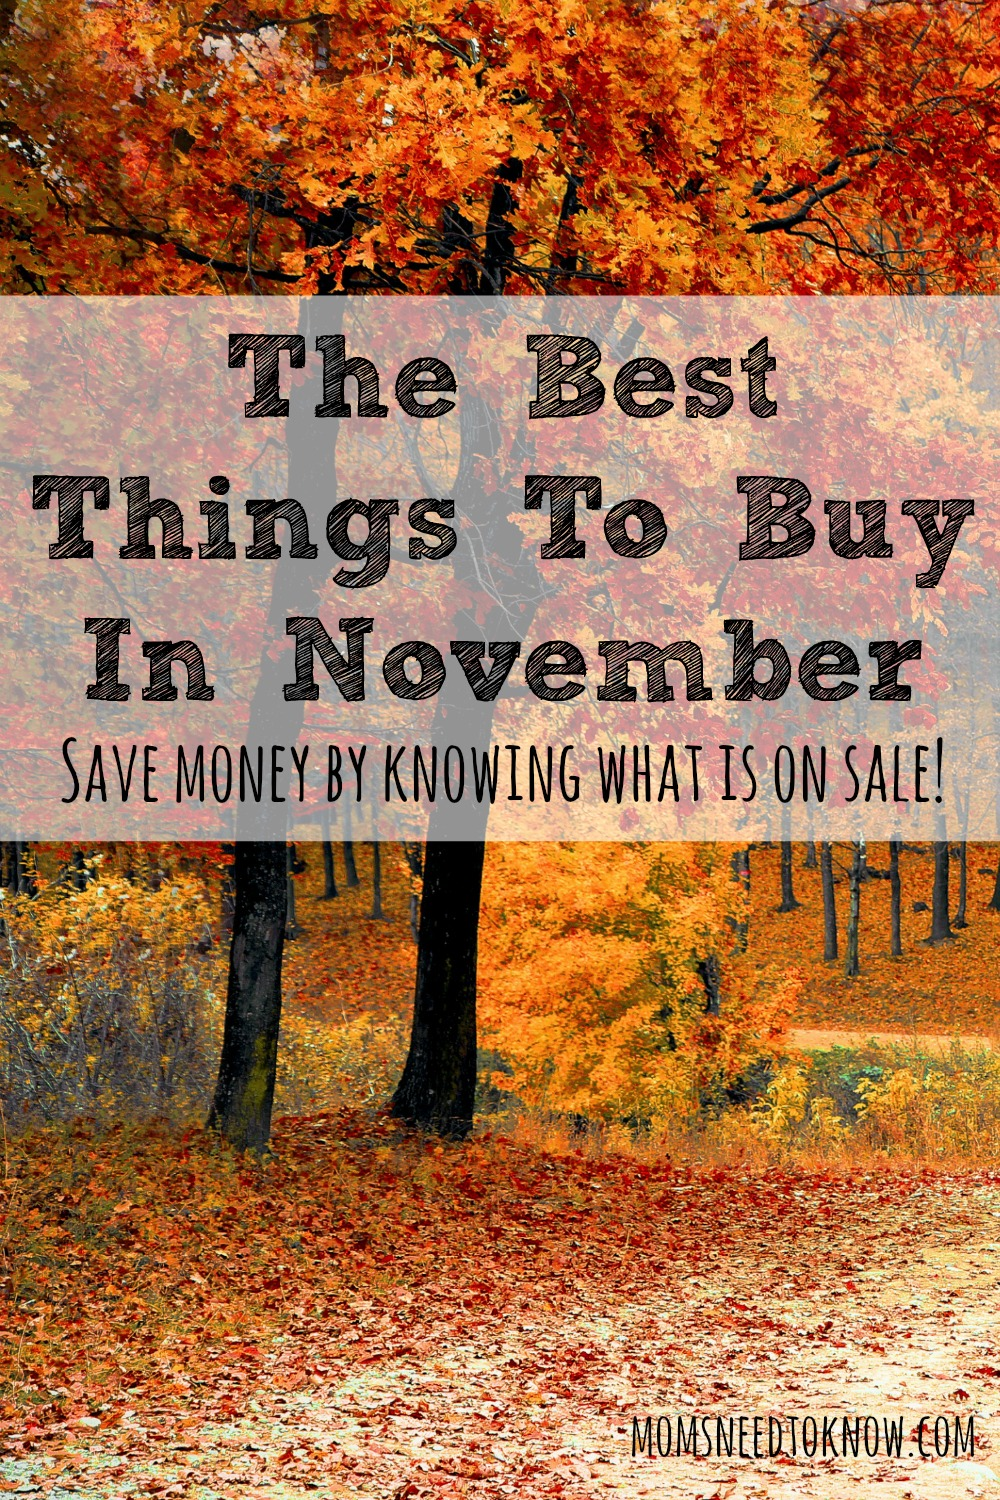 Knowing what the best things to buy in November are can save you a bunch of money. Stock up when these items are at their least expensive!